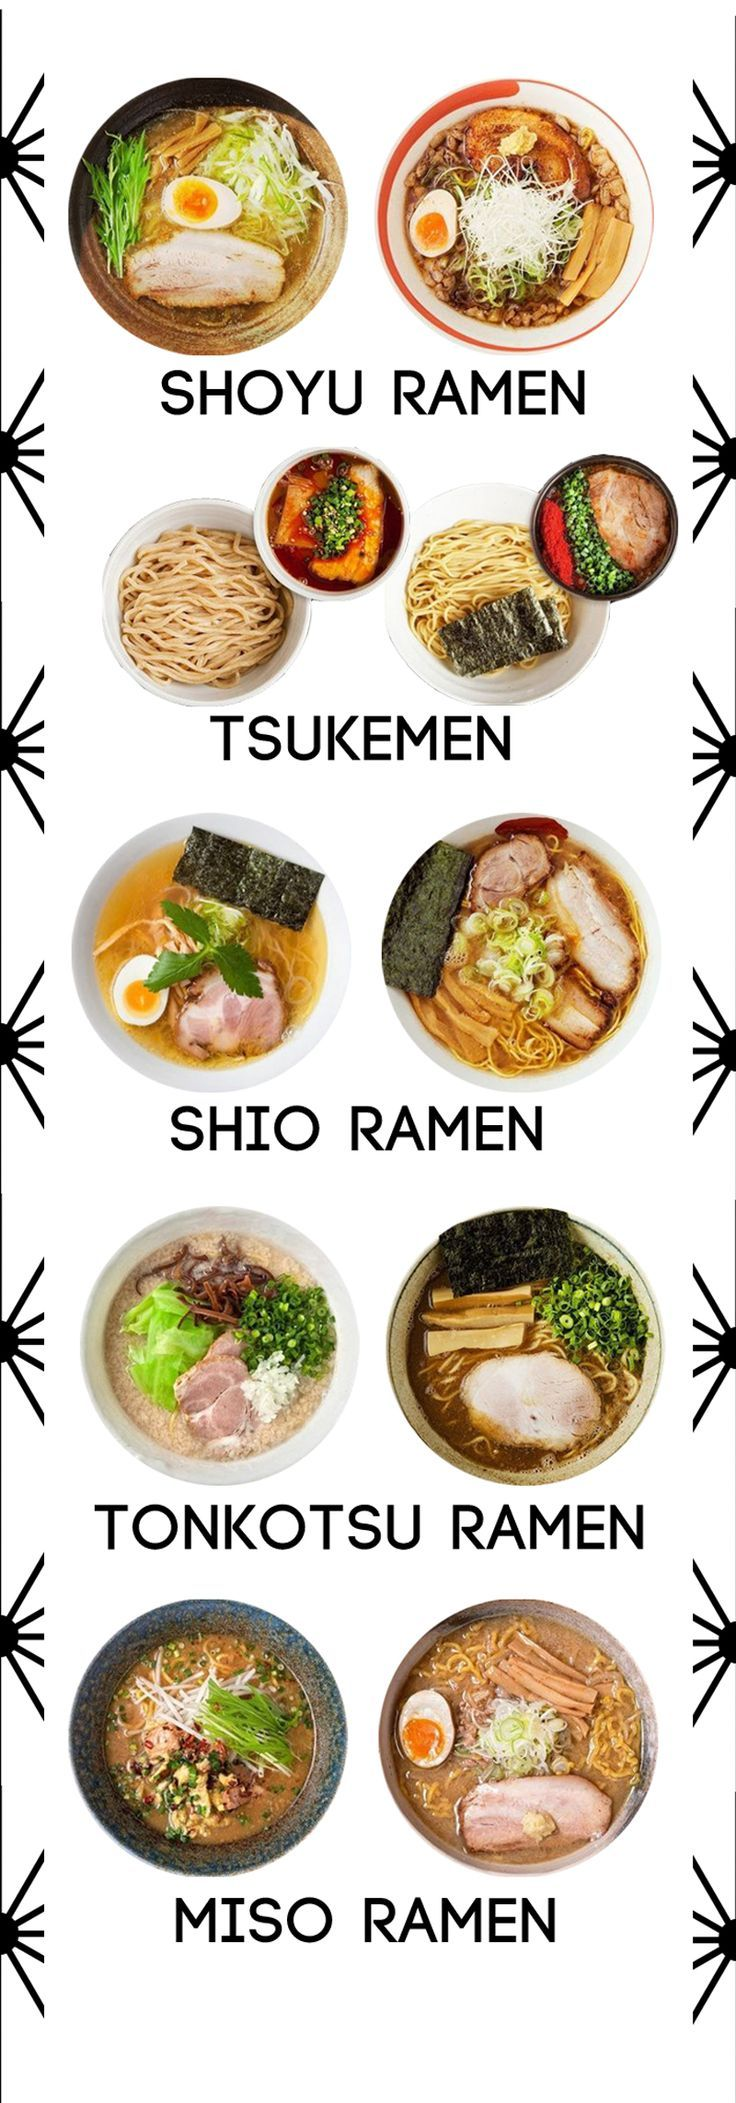 193 best chef flavor images on Pinterest | Asian food recipes, Asian ...